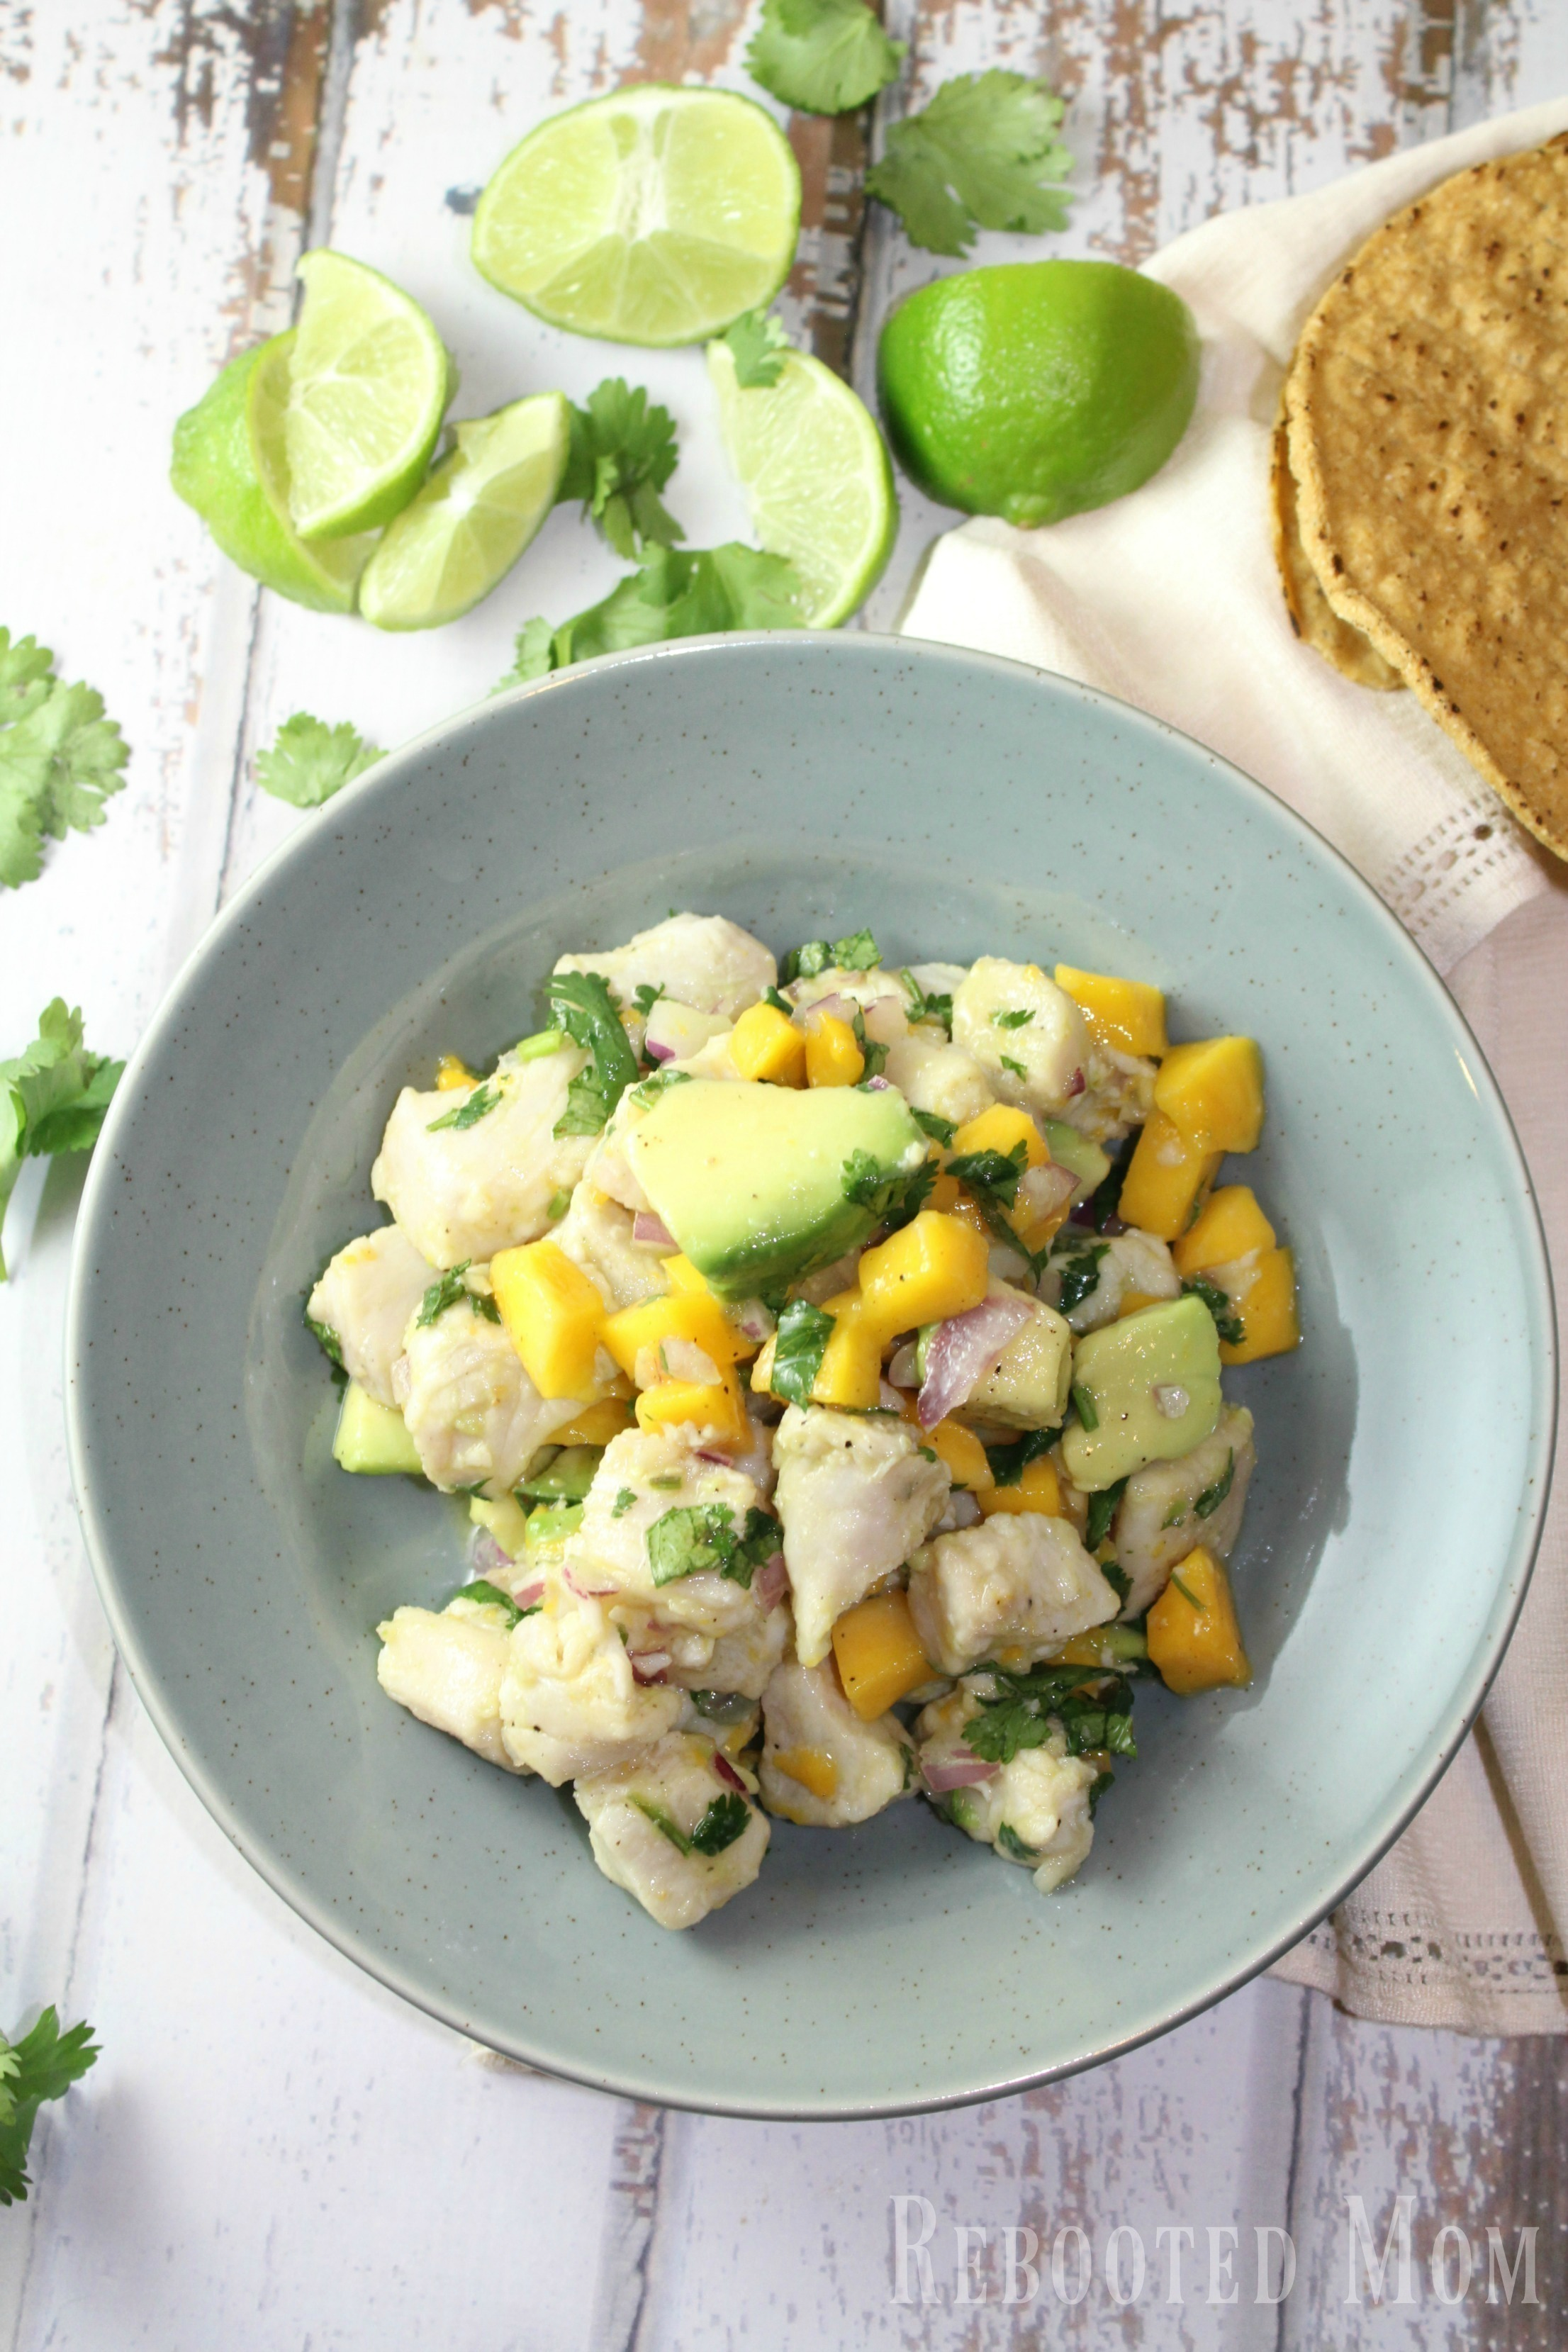 Tropical Mango Ceviche - Rebooted Mom    This tropical mango ceviche uses lemon or lime juice with mahi mahi fillets to cook the fish (through the acidic marinade) in just under 45 minutes. It's delicious!